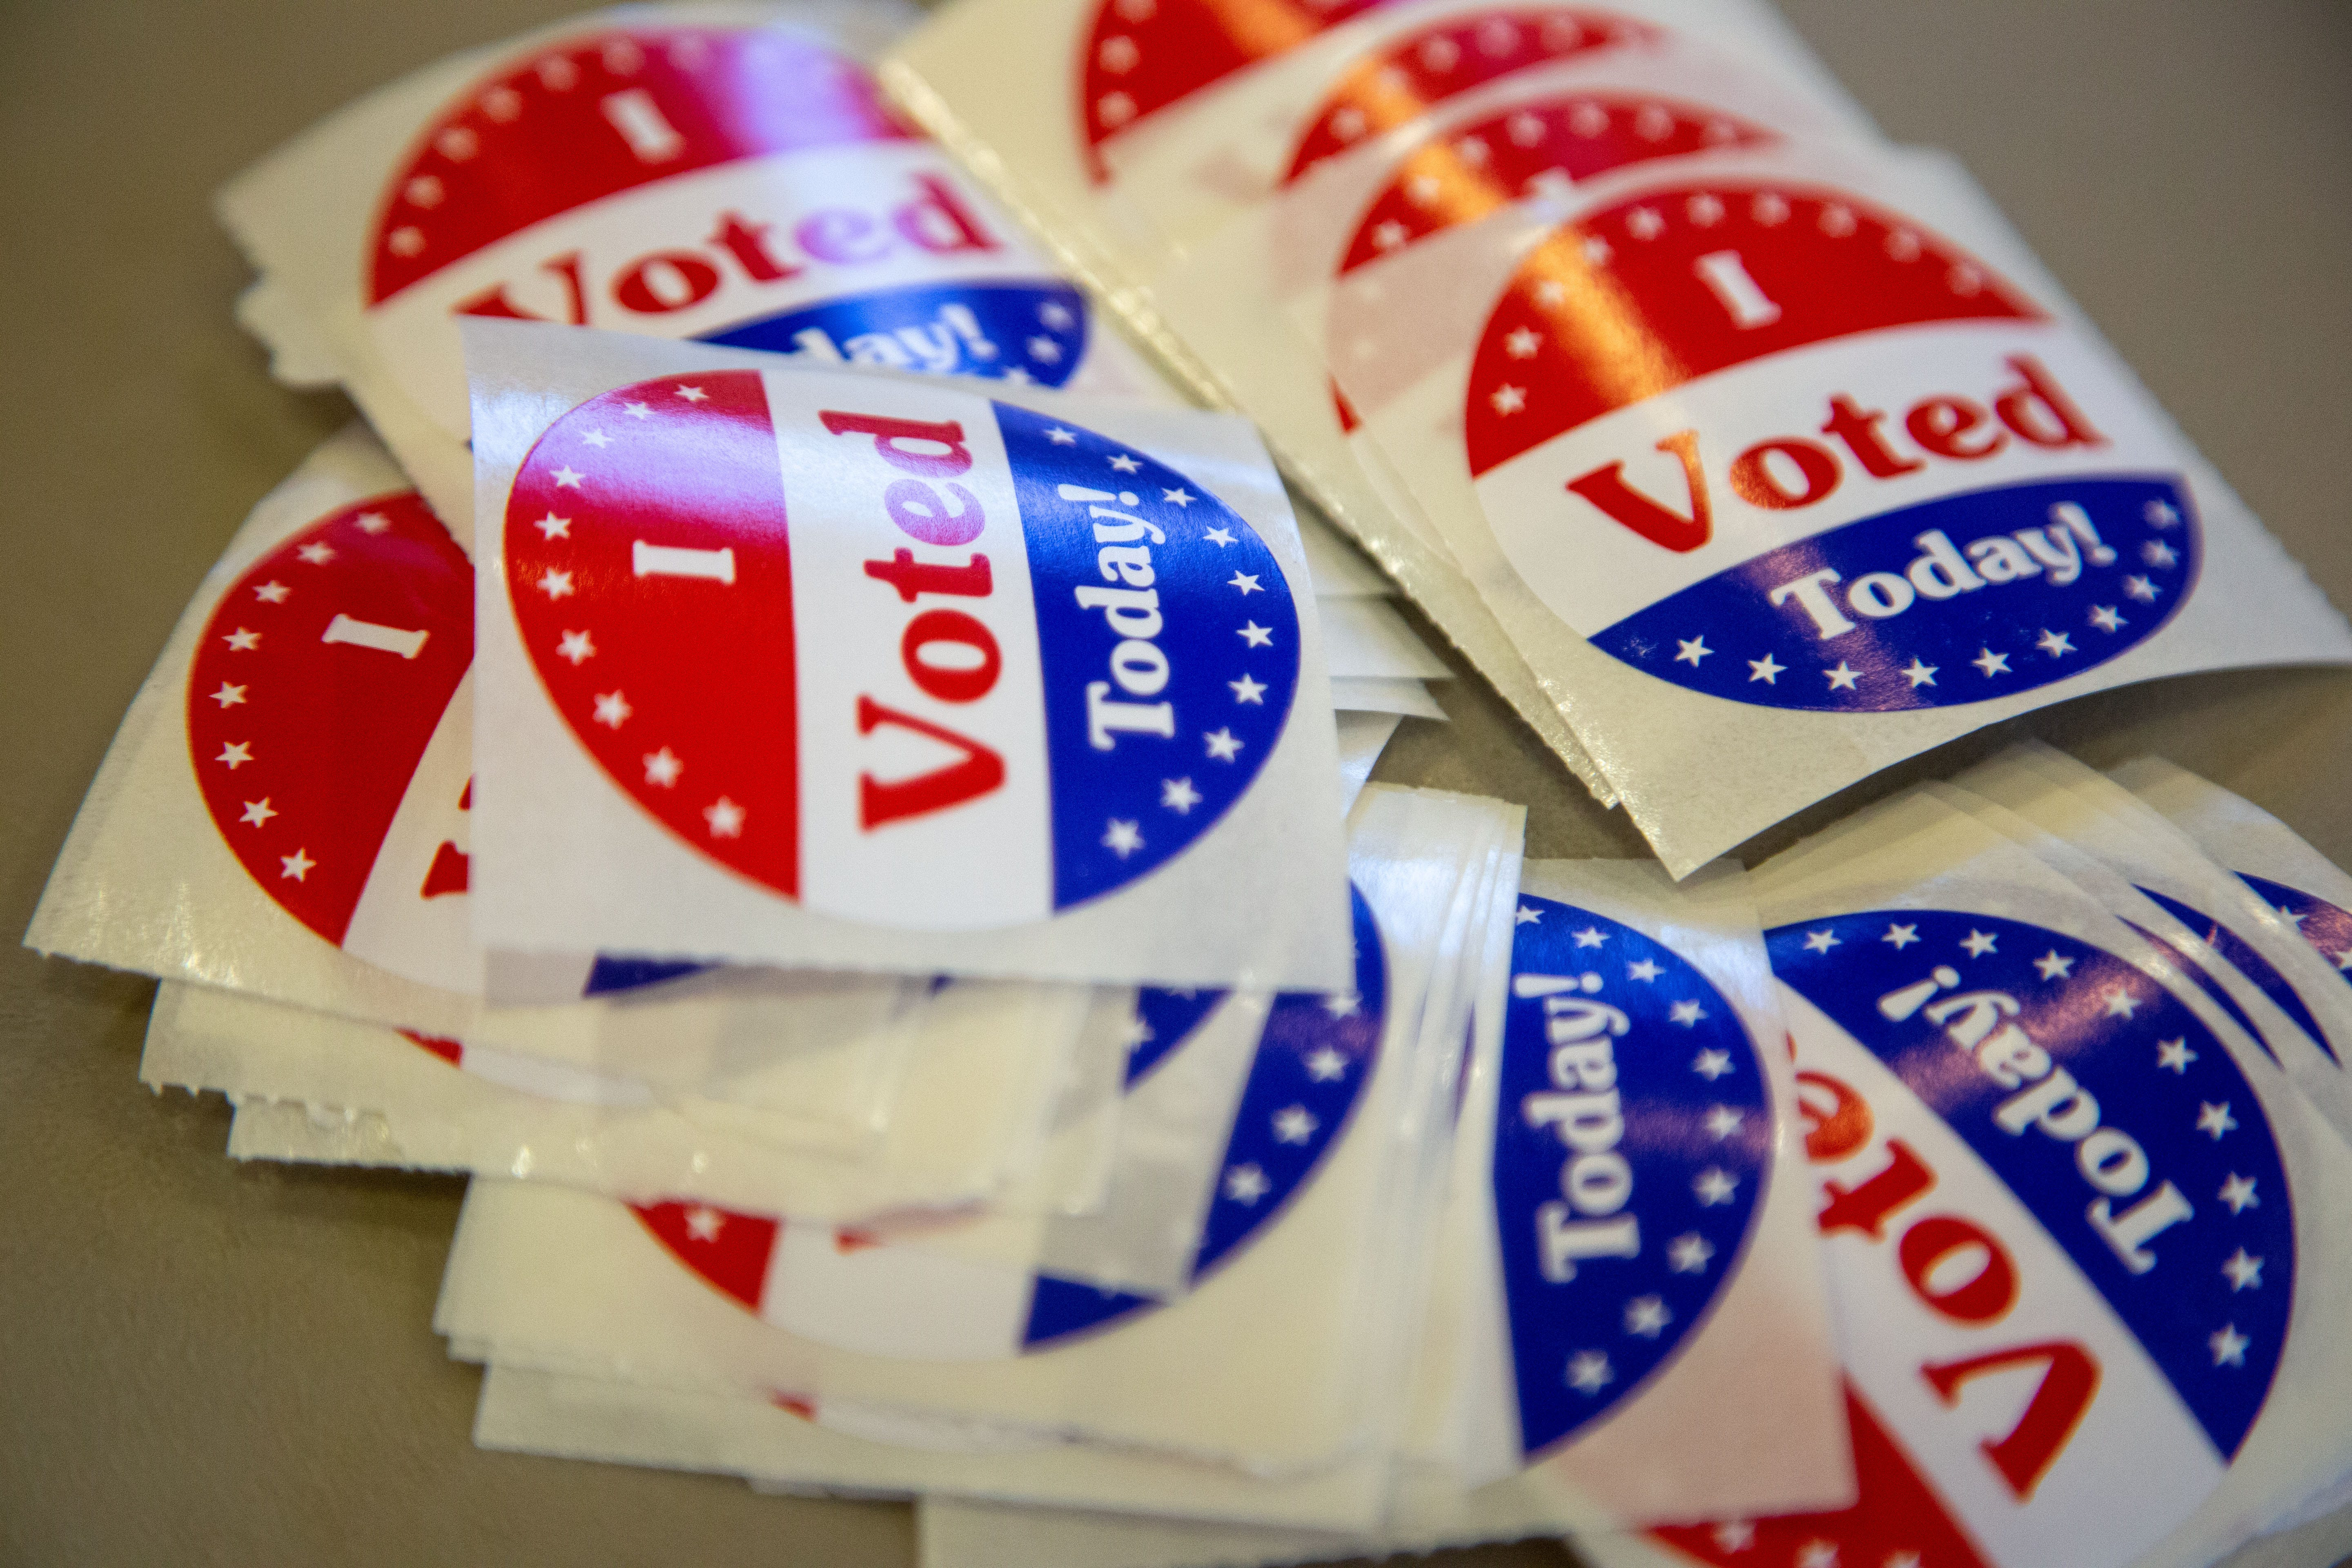 Judge orders 234,000 purged from Wisconsin voter rolls